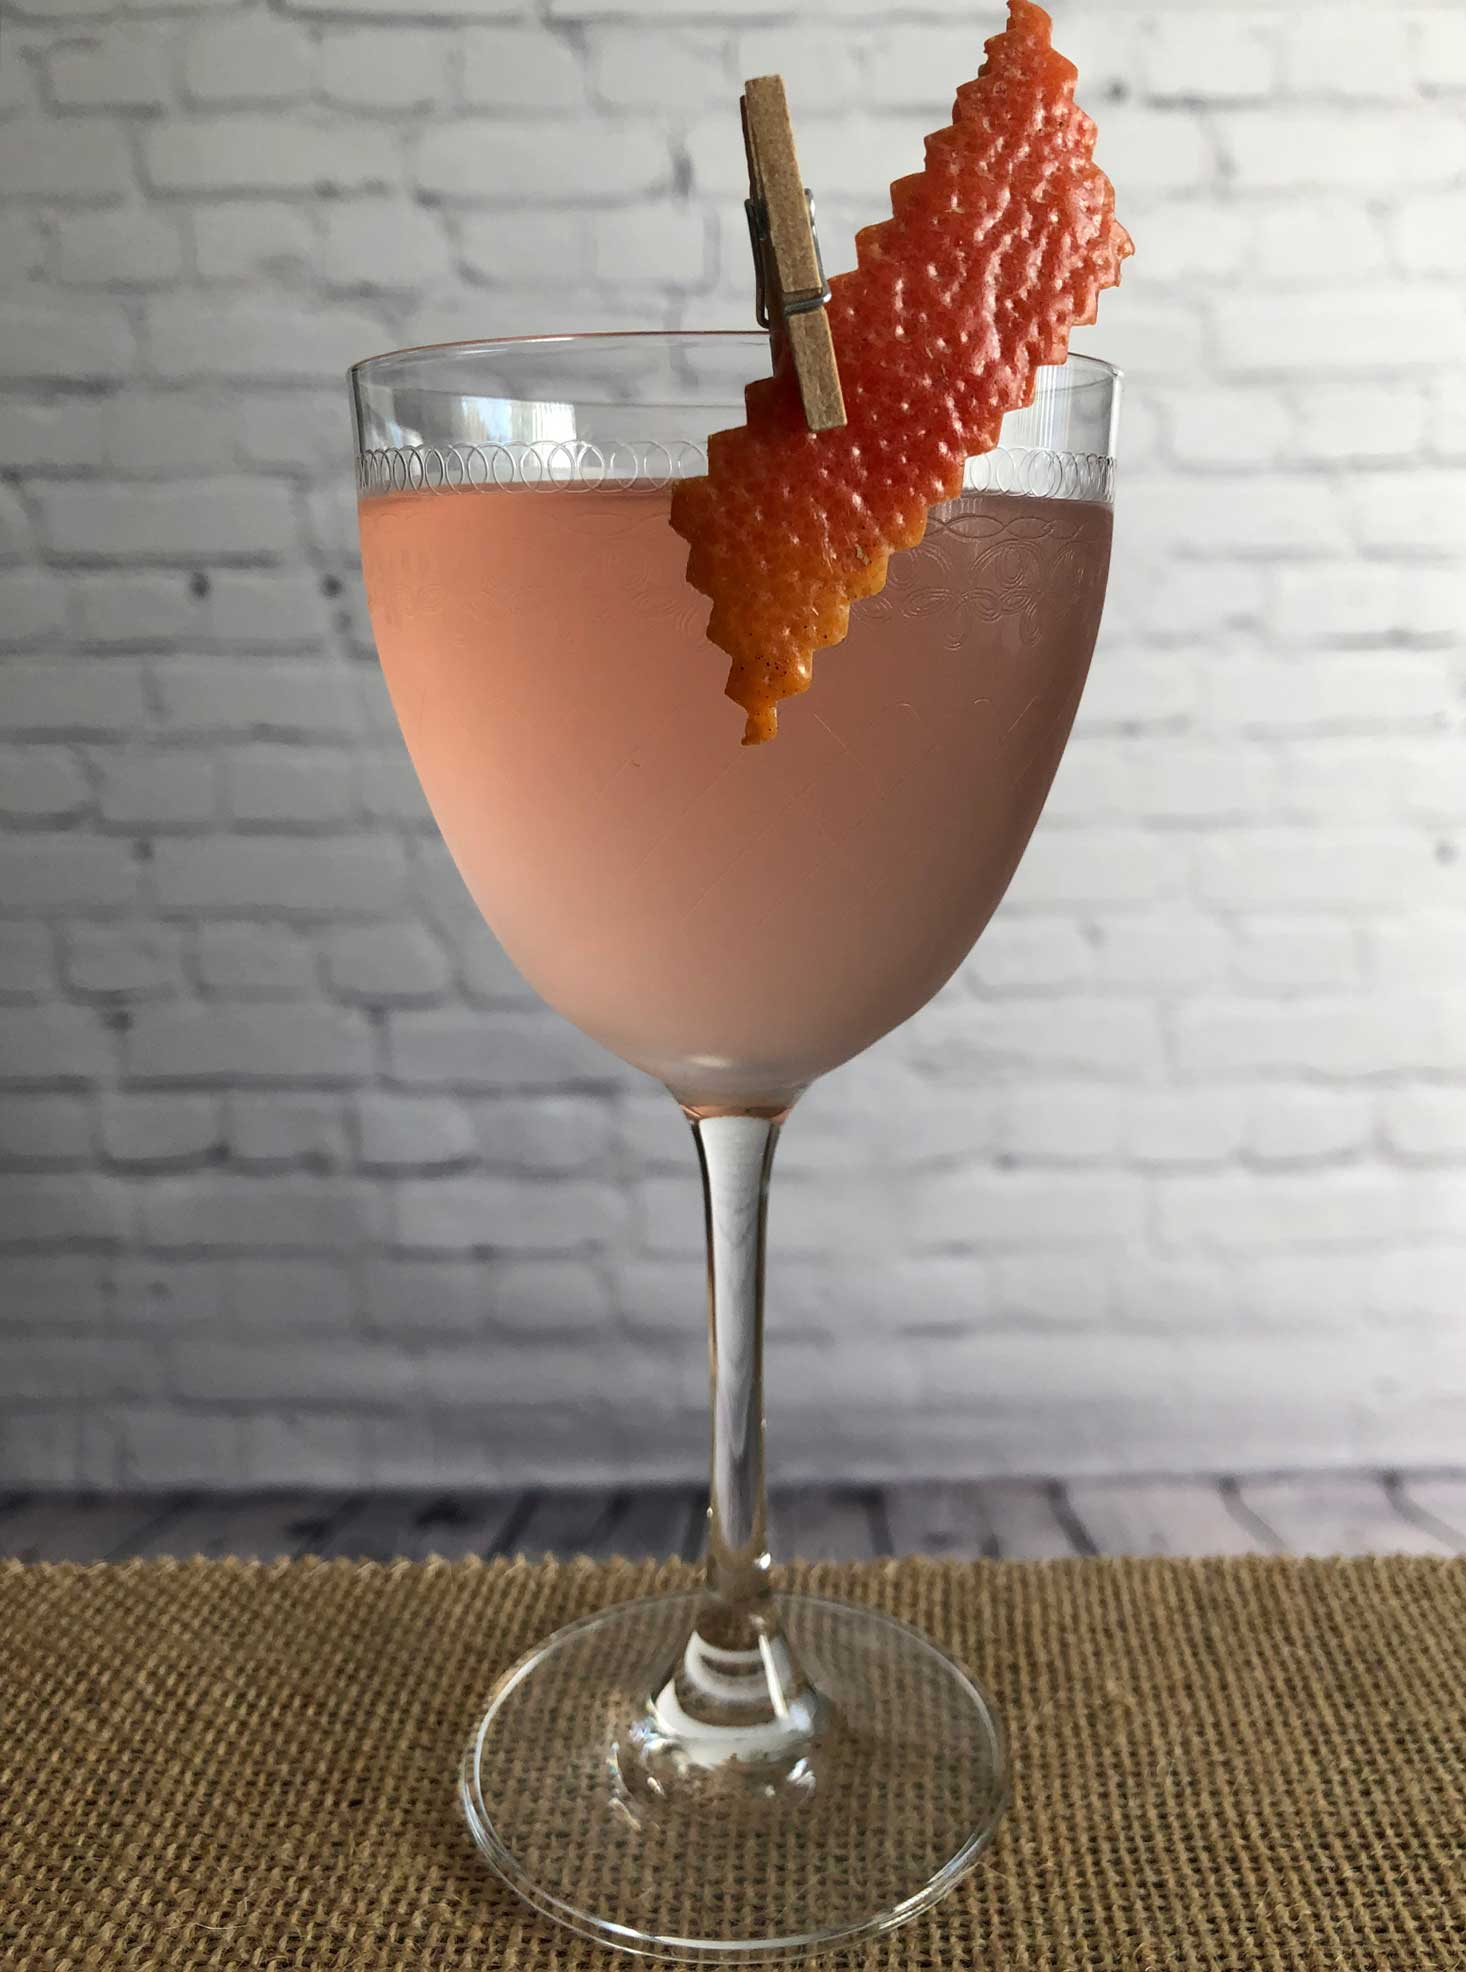 An example of the Alpen Rose, the mixed drink (cocktail), by Lee Edwards, featuring Dolin Dry Vermouth de Chambéry, Blume Marillen Apricot Eau-de-Vie, Cocchi Americano Rosa, and simple syrup; photo by Lee Edwards